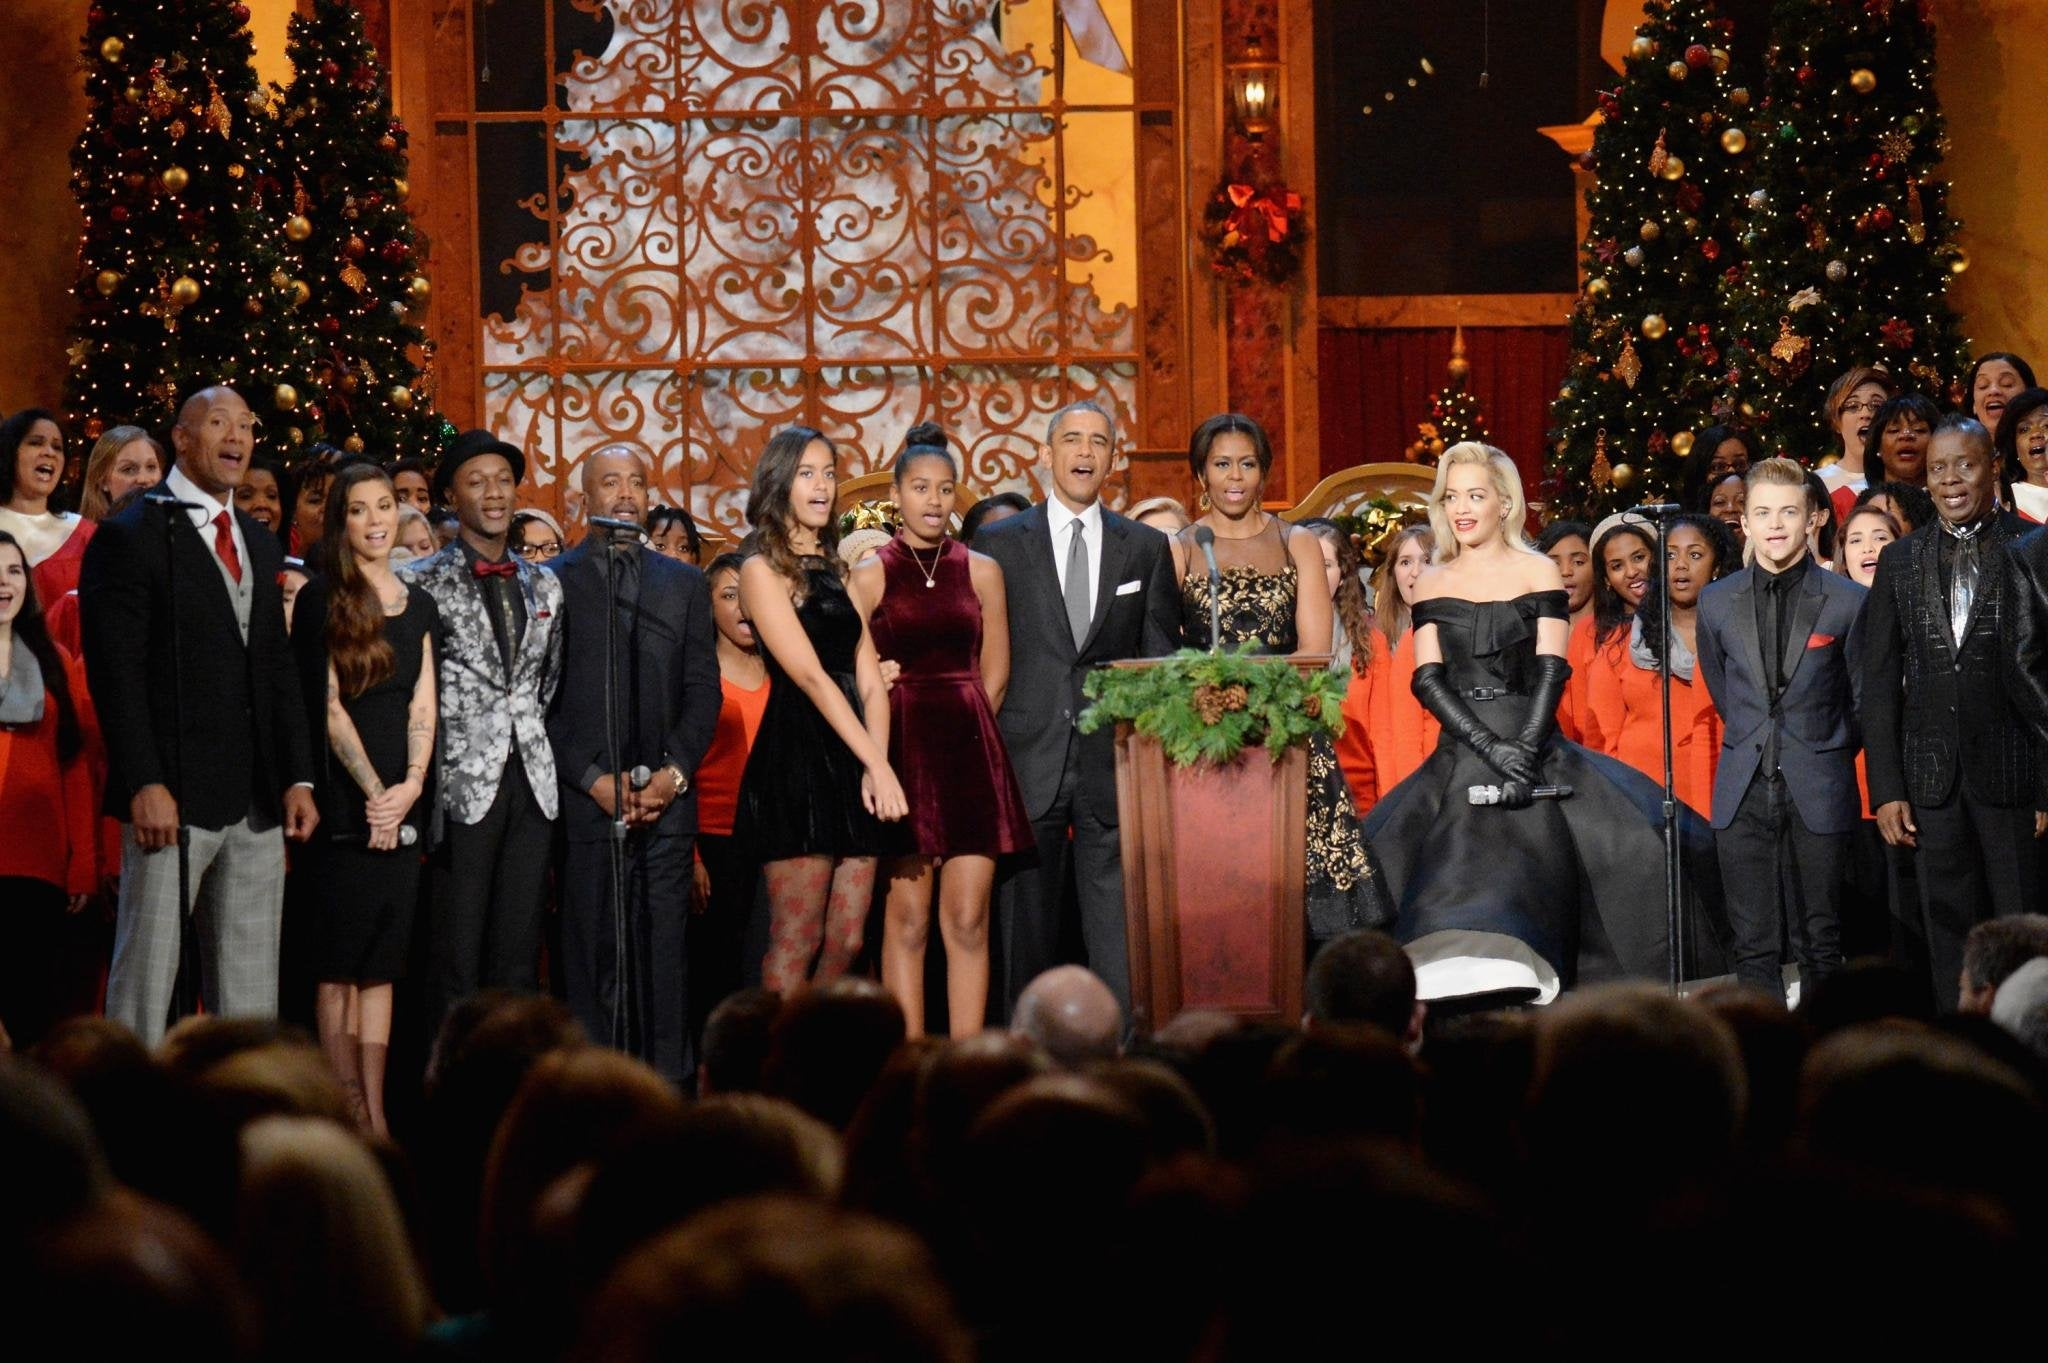 Earth, Wind & Fire, The Rock Spread Holiday Cheer at the Annual 'Christmas in Washington' Special